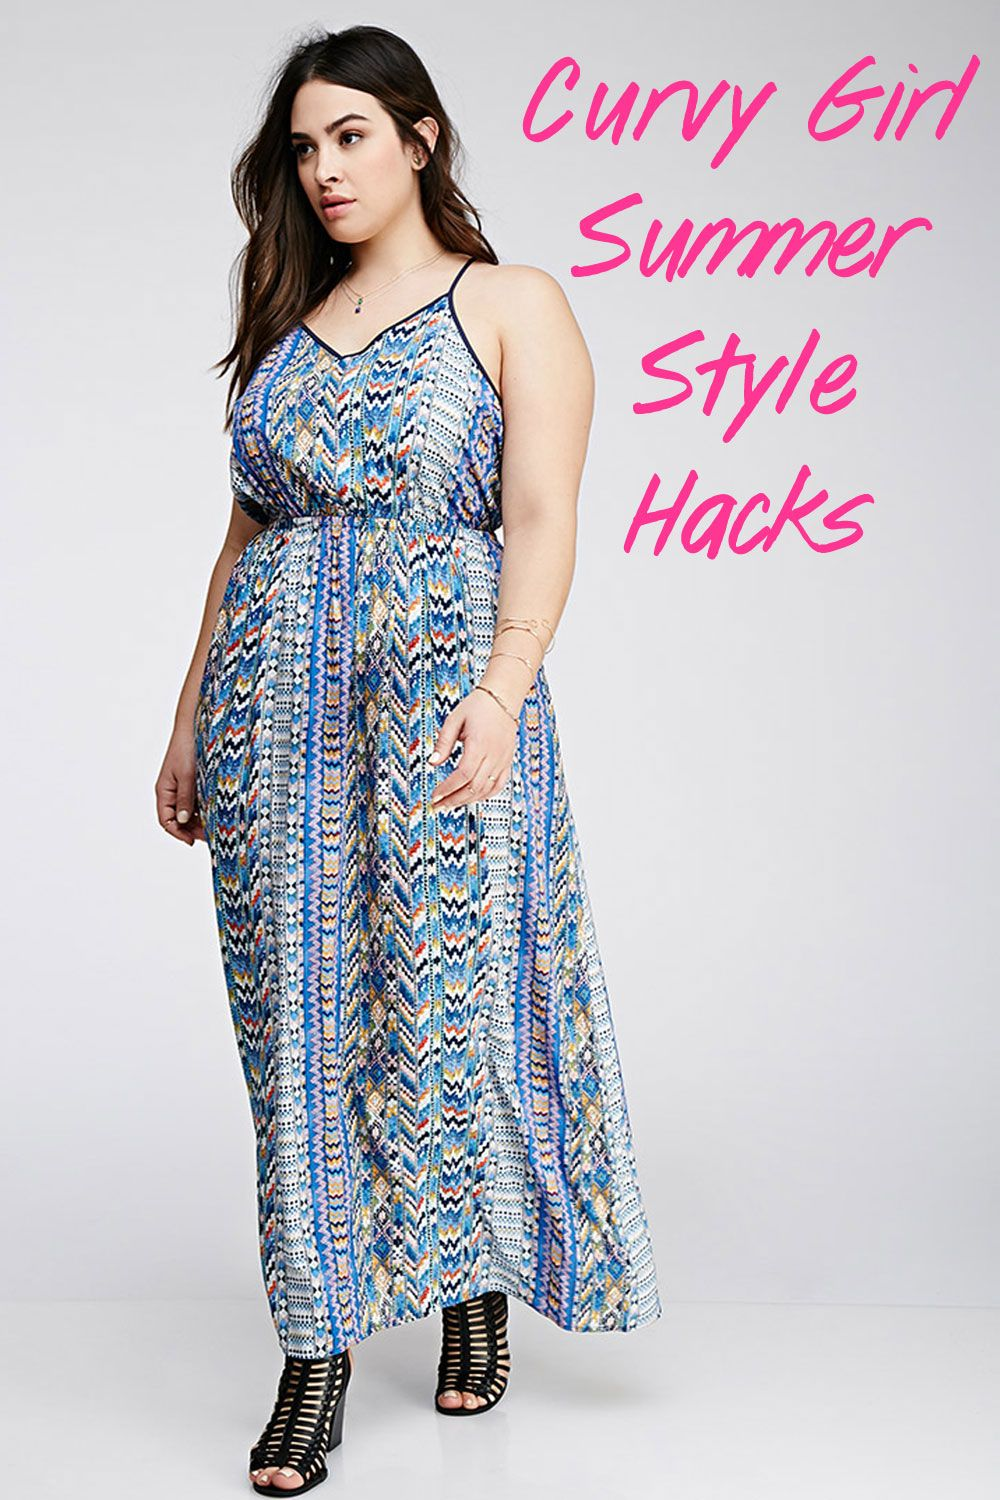 9 Curvy Girl Fashion Hacks To Get You Through Summer